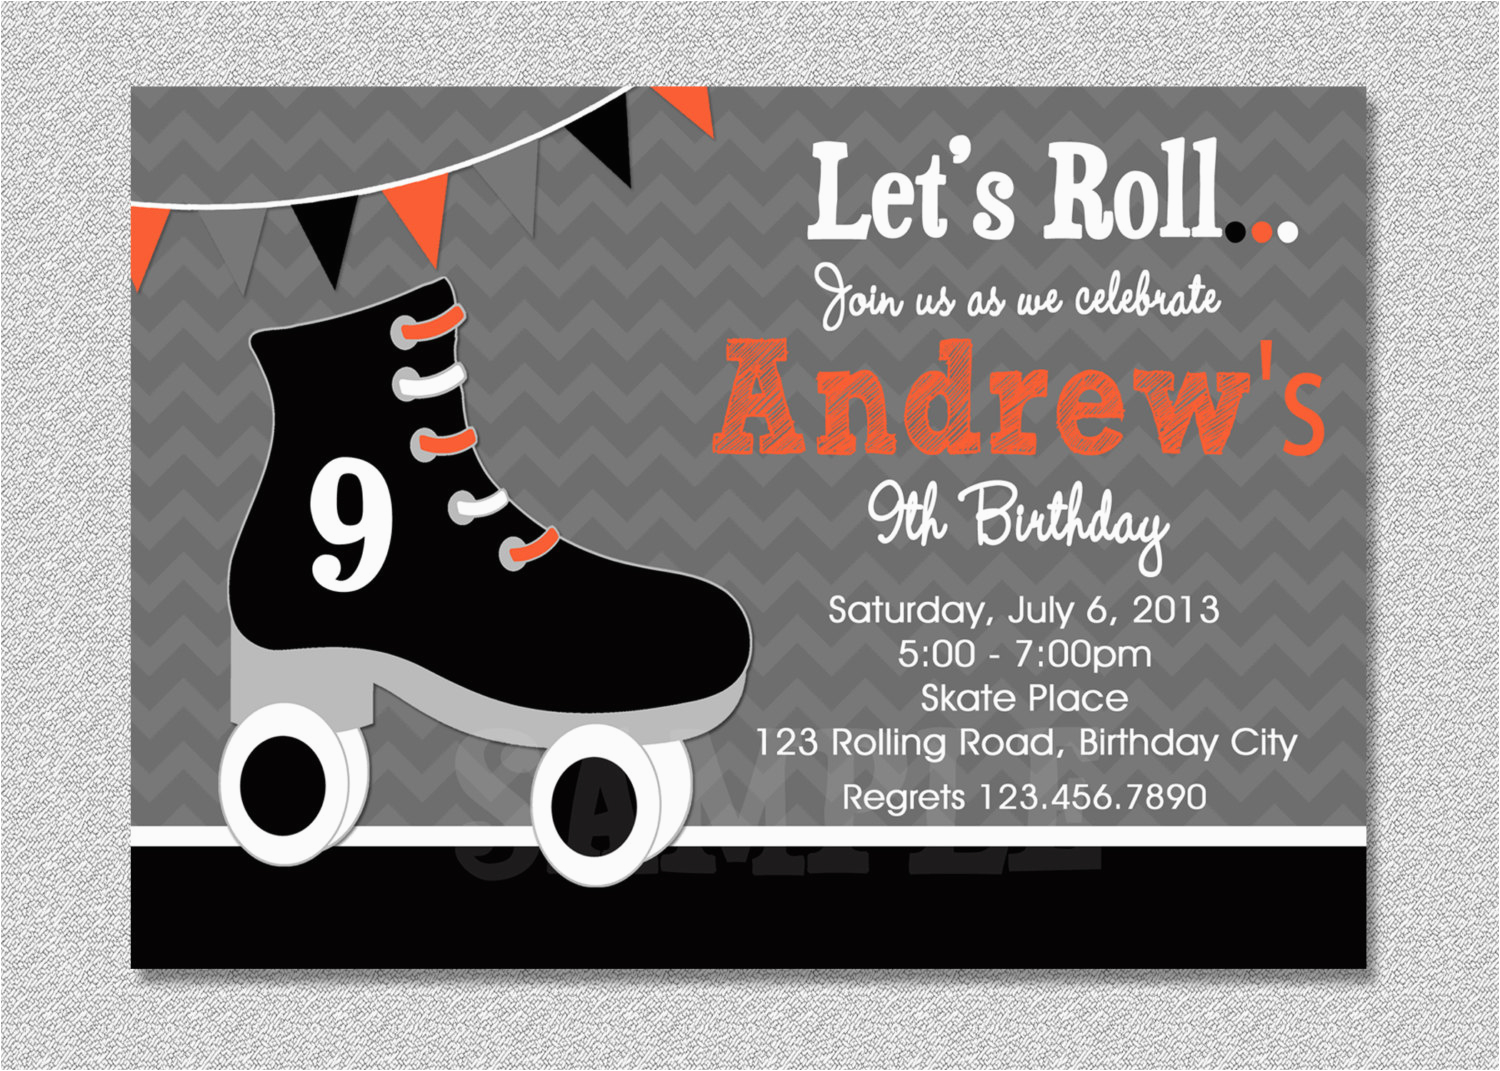 Skating Rink Birthday Party Invitations Boys Skating Birthday Invitation Boys Roller Skating